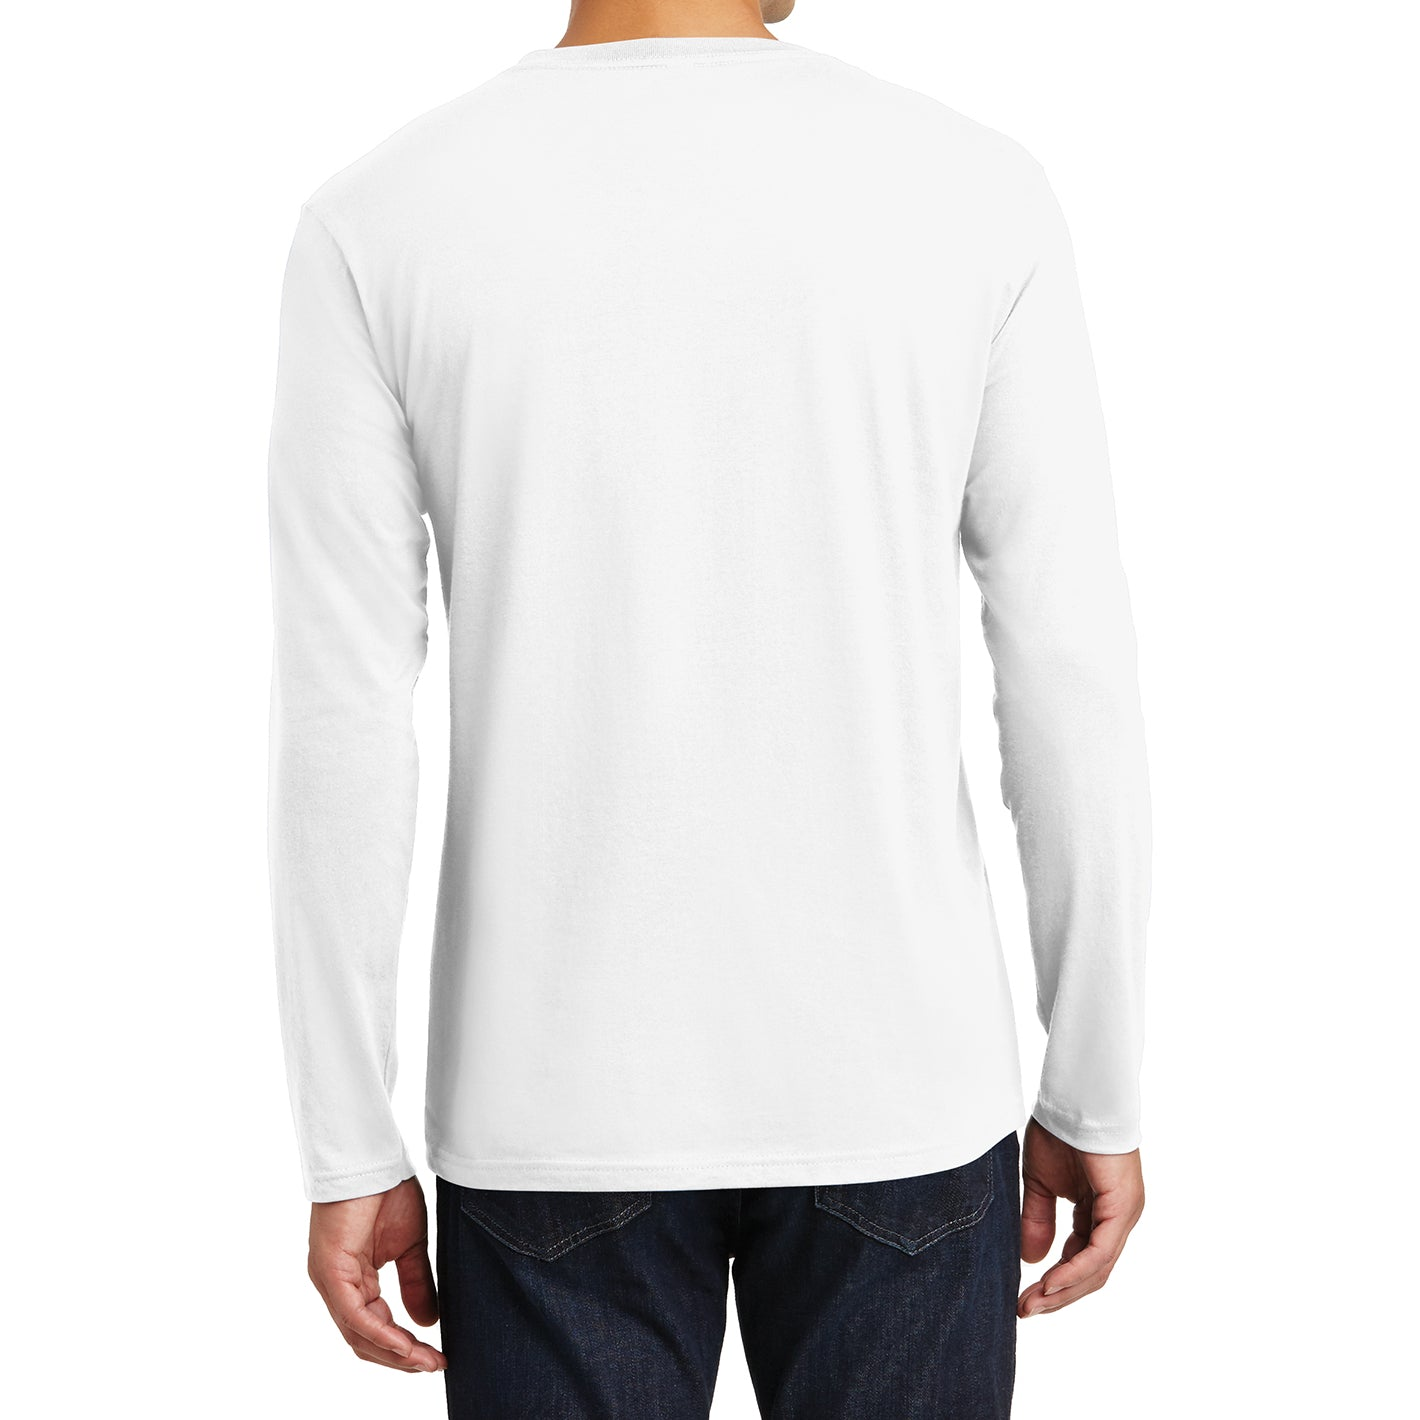 Mens Perfect Weight Long Sleeve Tee - Bright White - Back